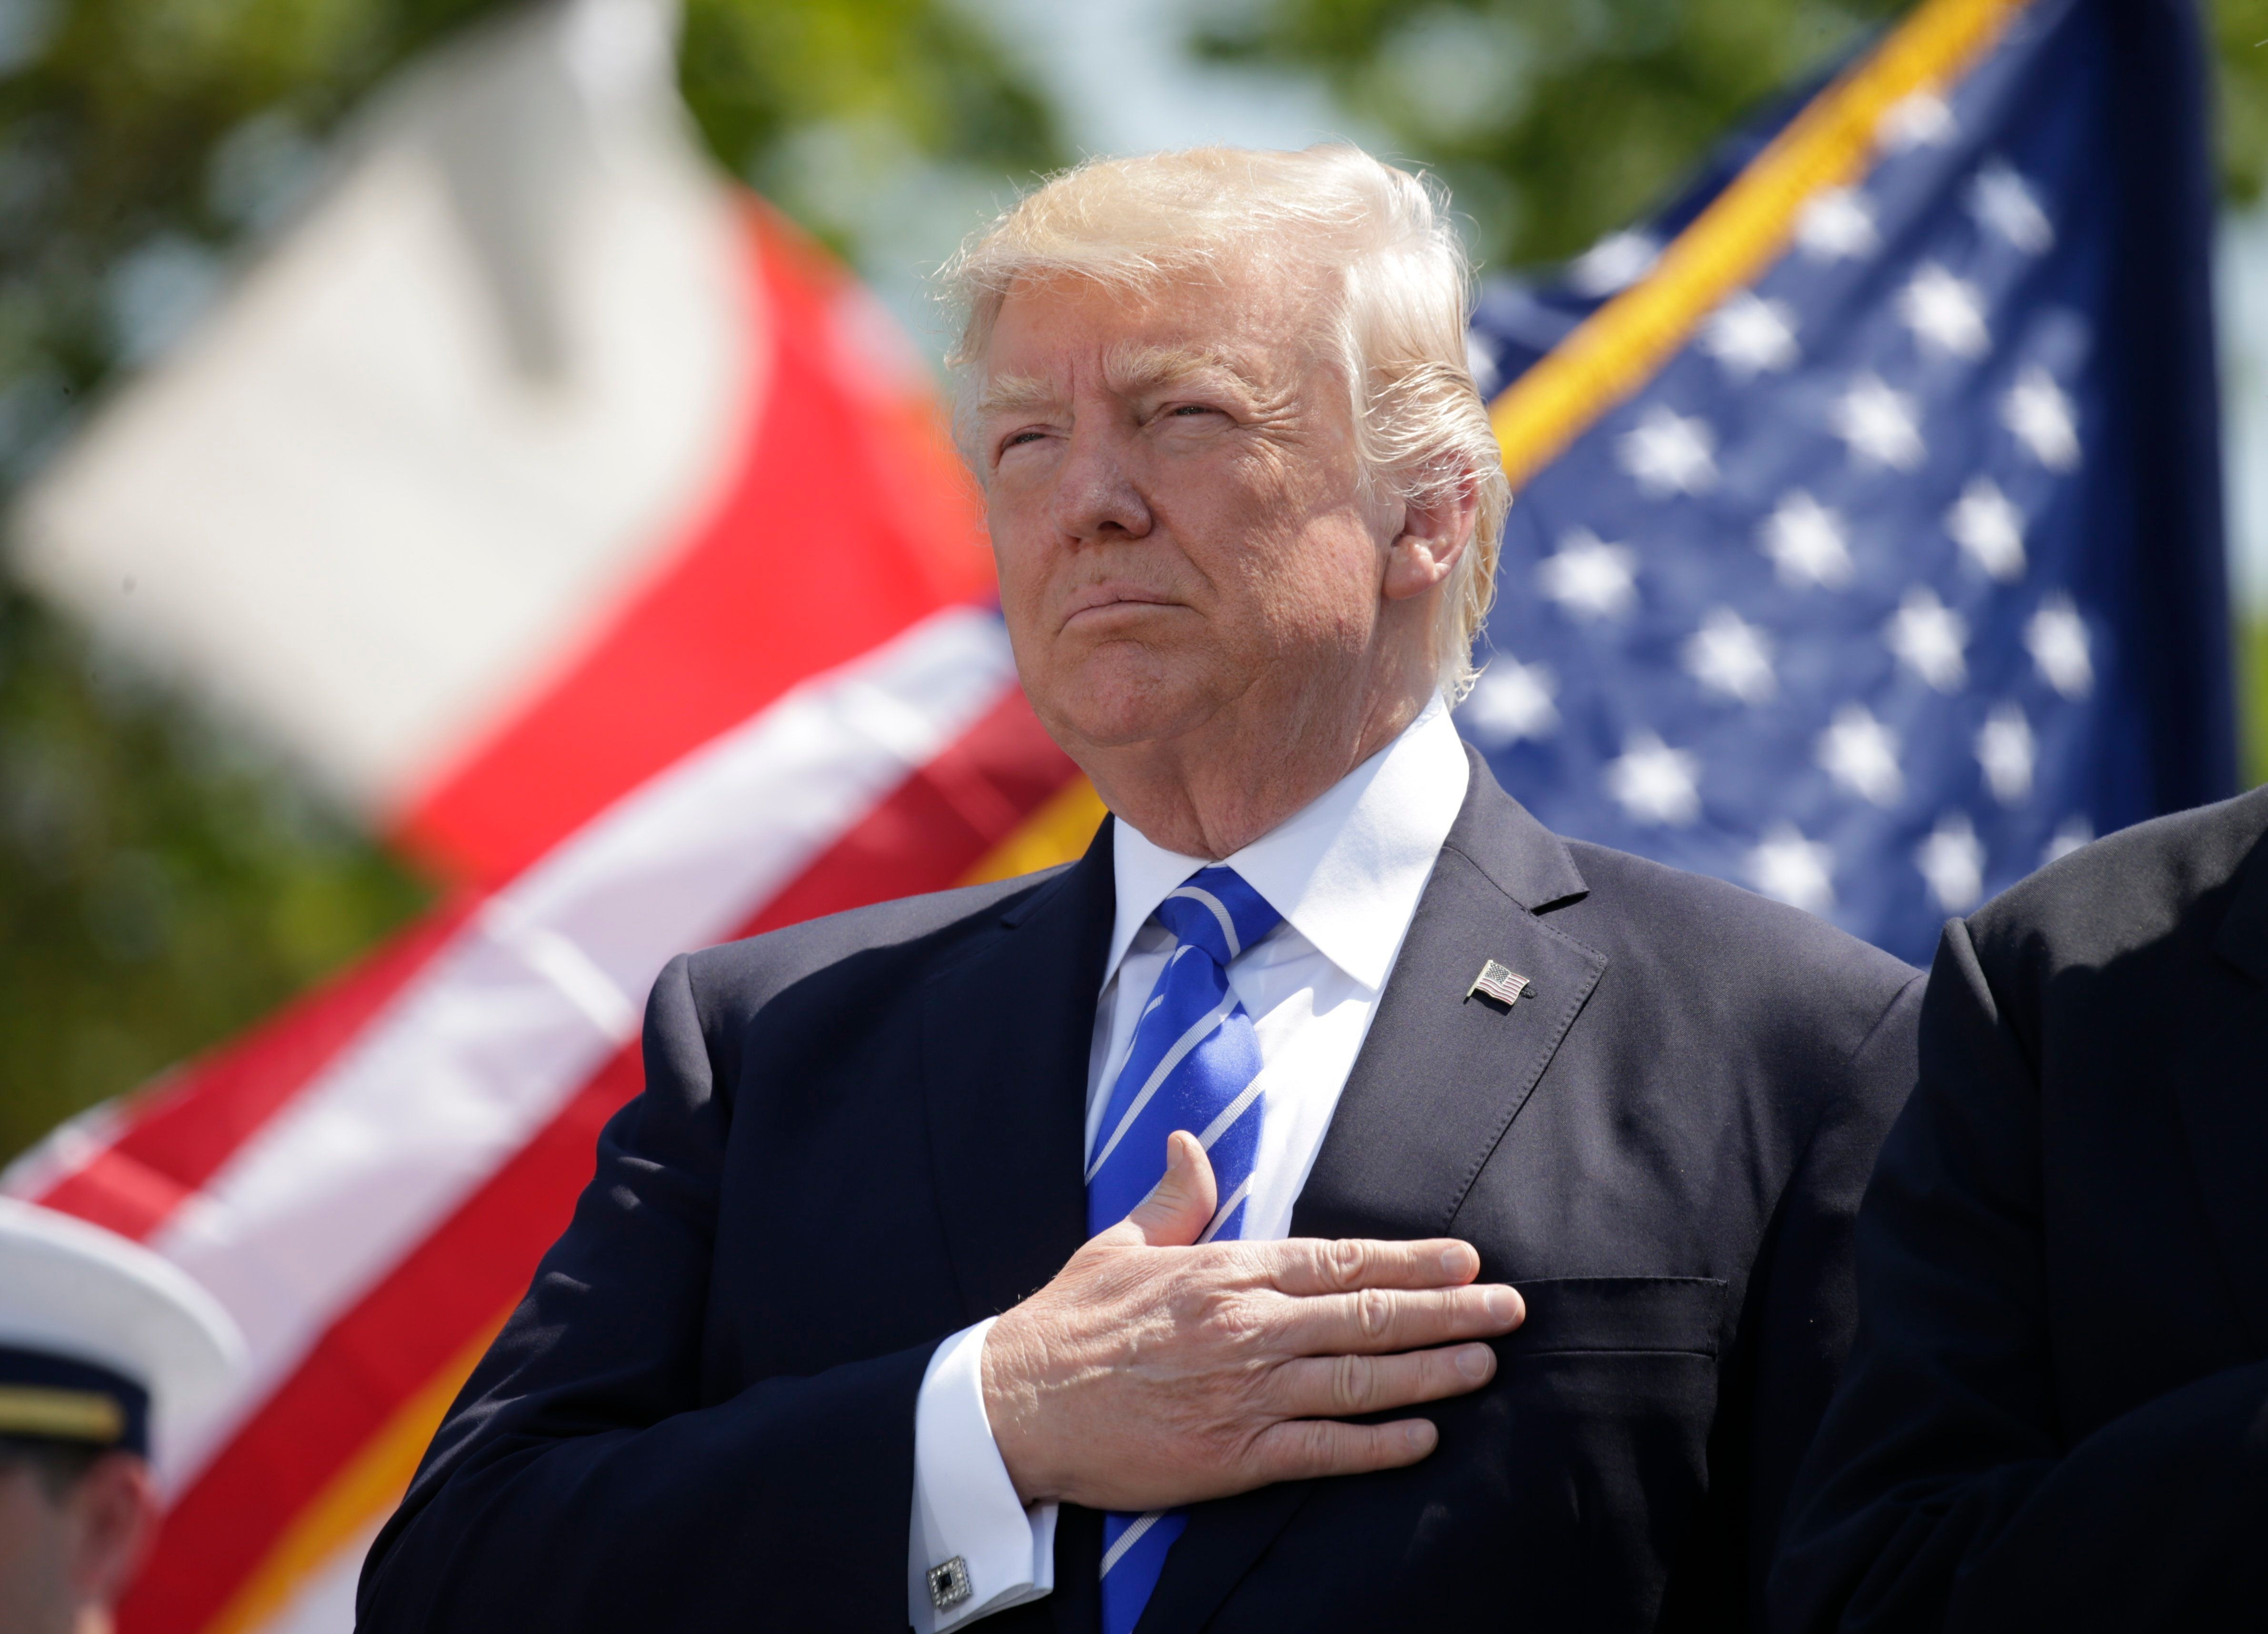 President Donald Trump holds his hand over his heart for the U.S. National Anthem as he attends the Coast Guard Academy commencement ceremonies to address the graduating class in New London, Connecticut, U.S. May 17, 2017. REUTERS/Kevin Lamarque